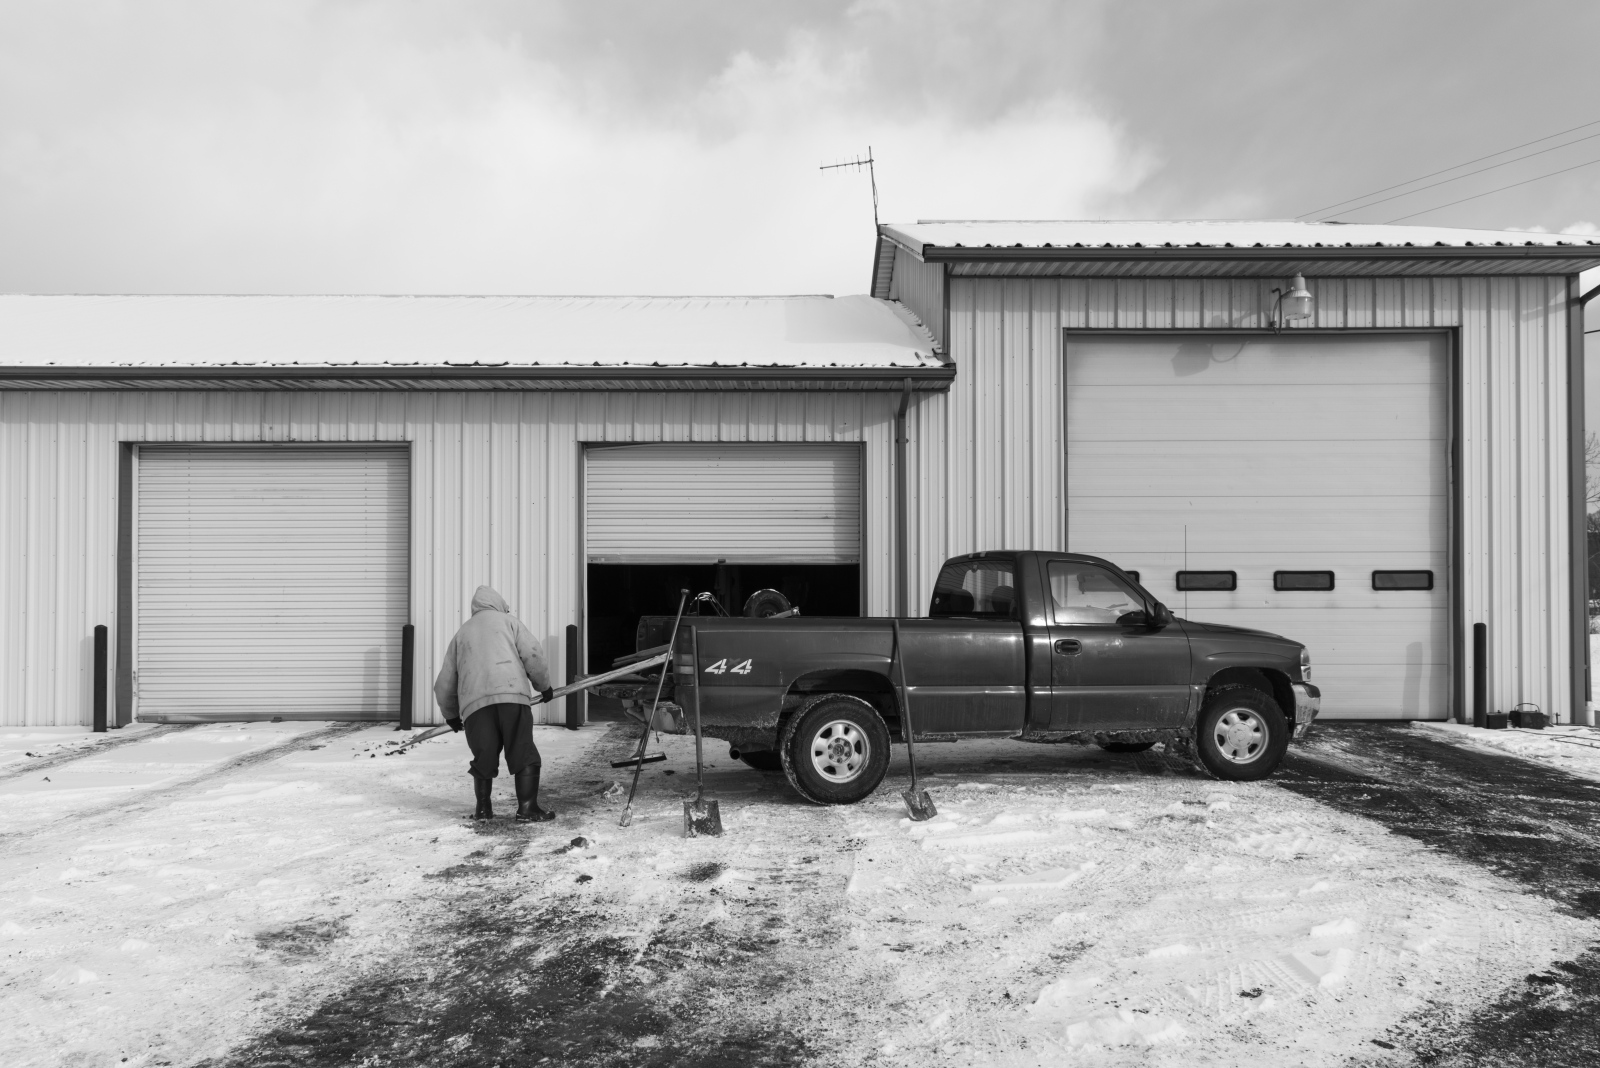 Dorsel Bibbee finishes a day's work by unloading equipment from his truck and storing it in the Troy Township Trustees building in Coolville, Ohio, in February 2015.